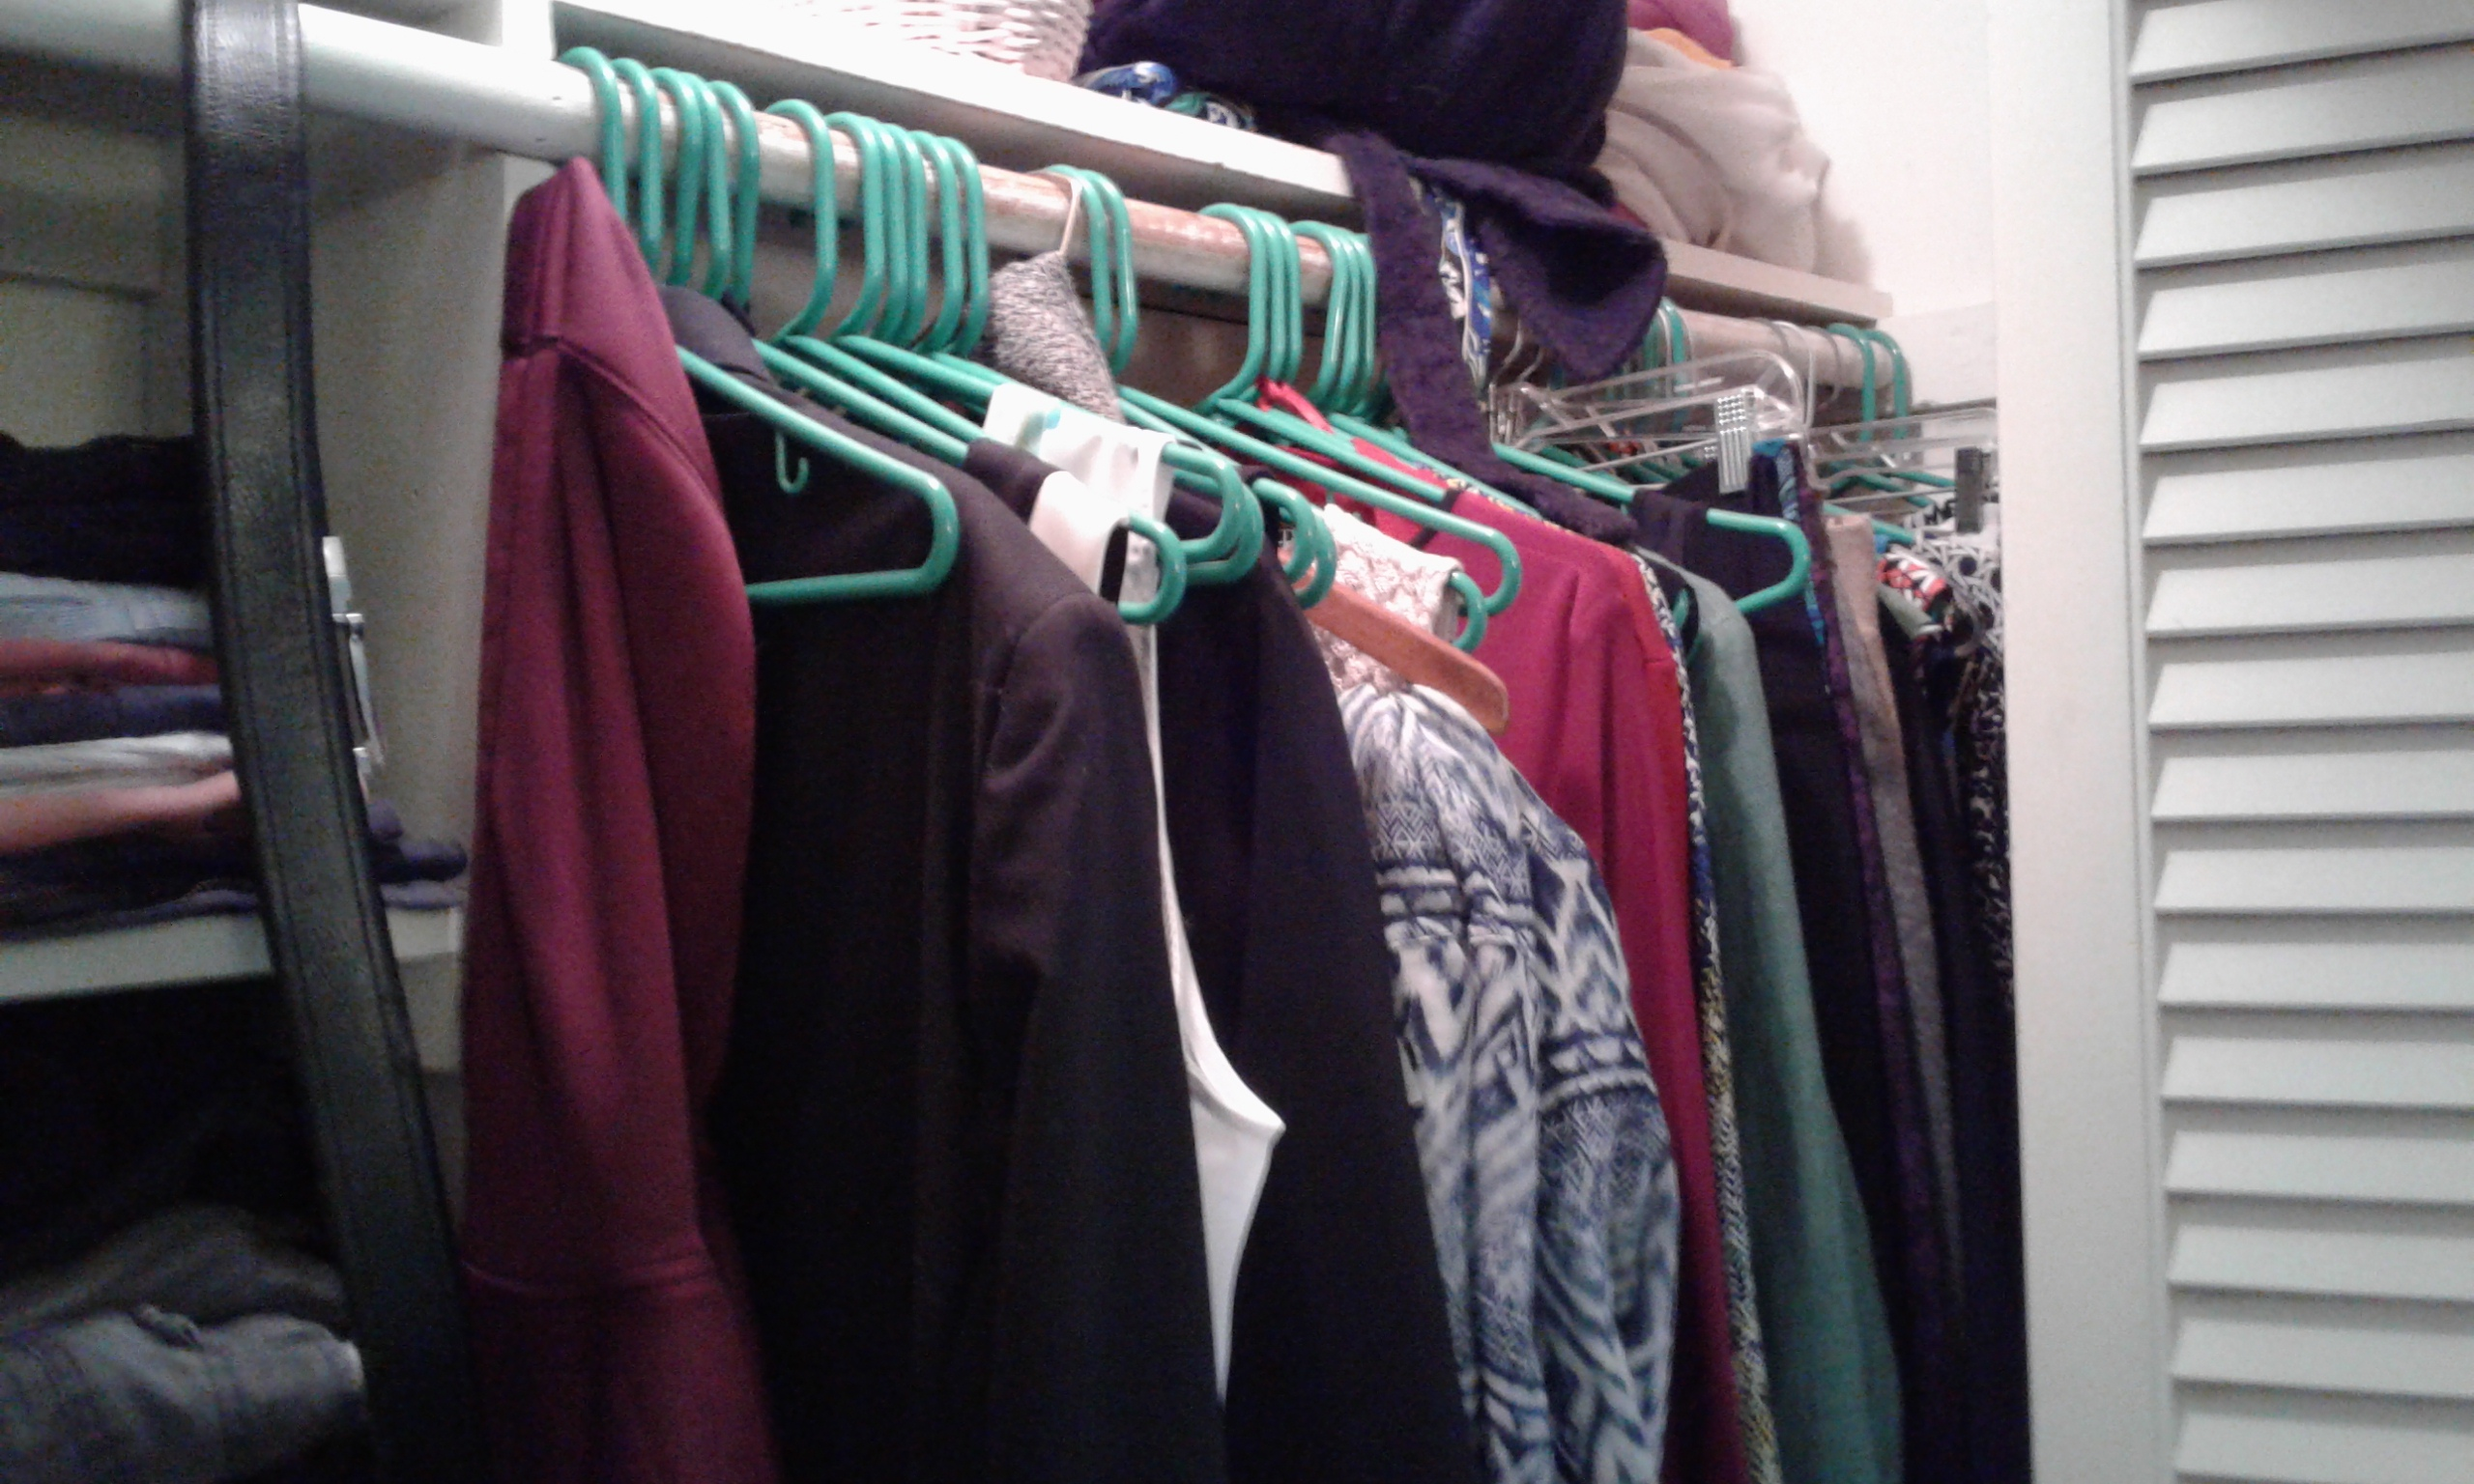 Etienne's hanging clothes before we rearranged them